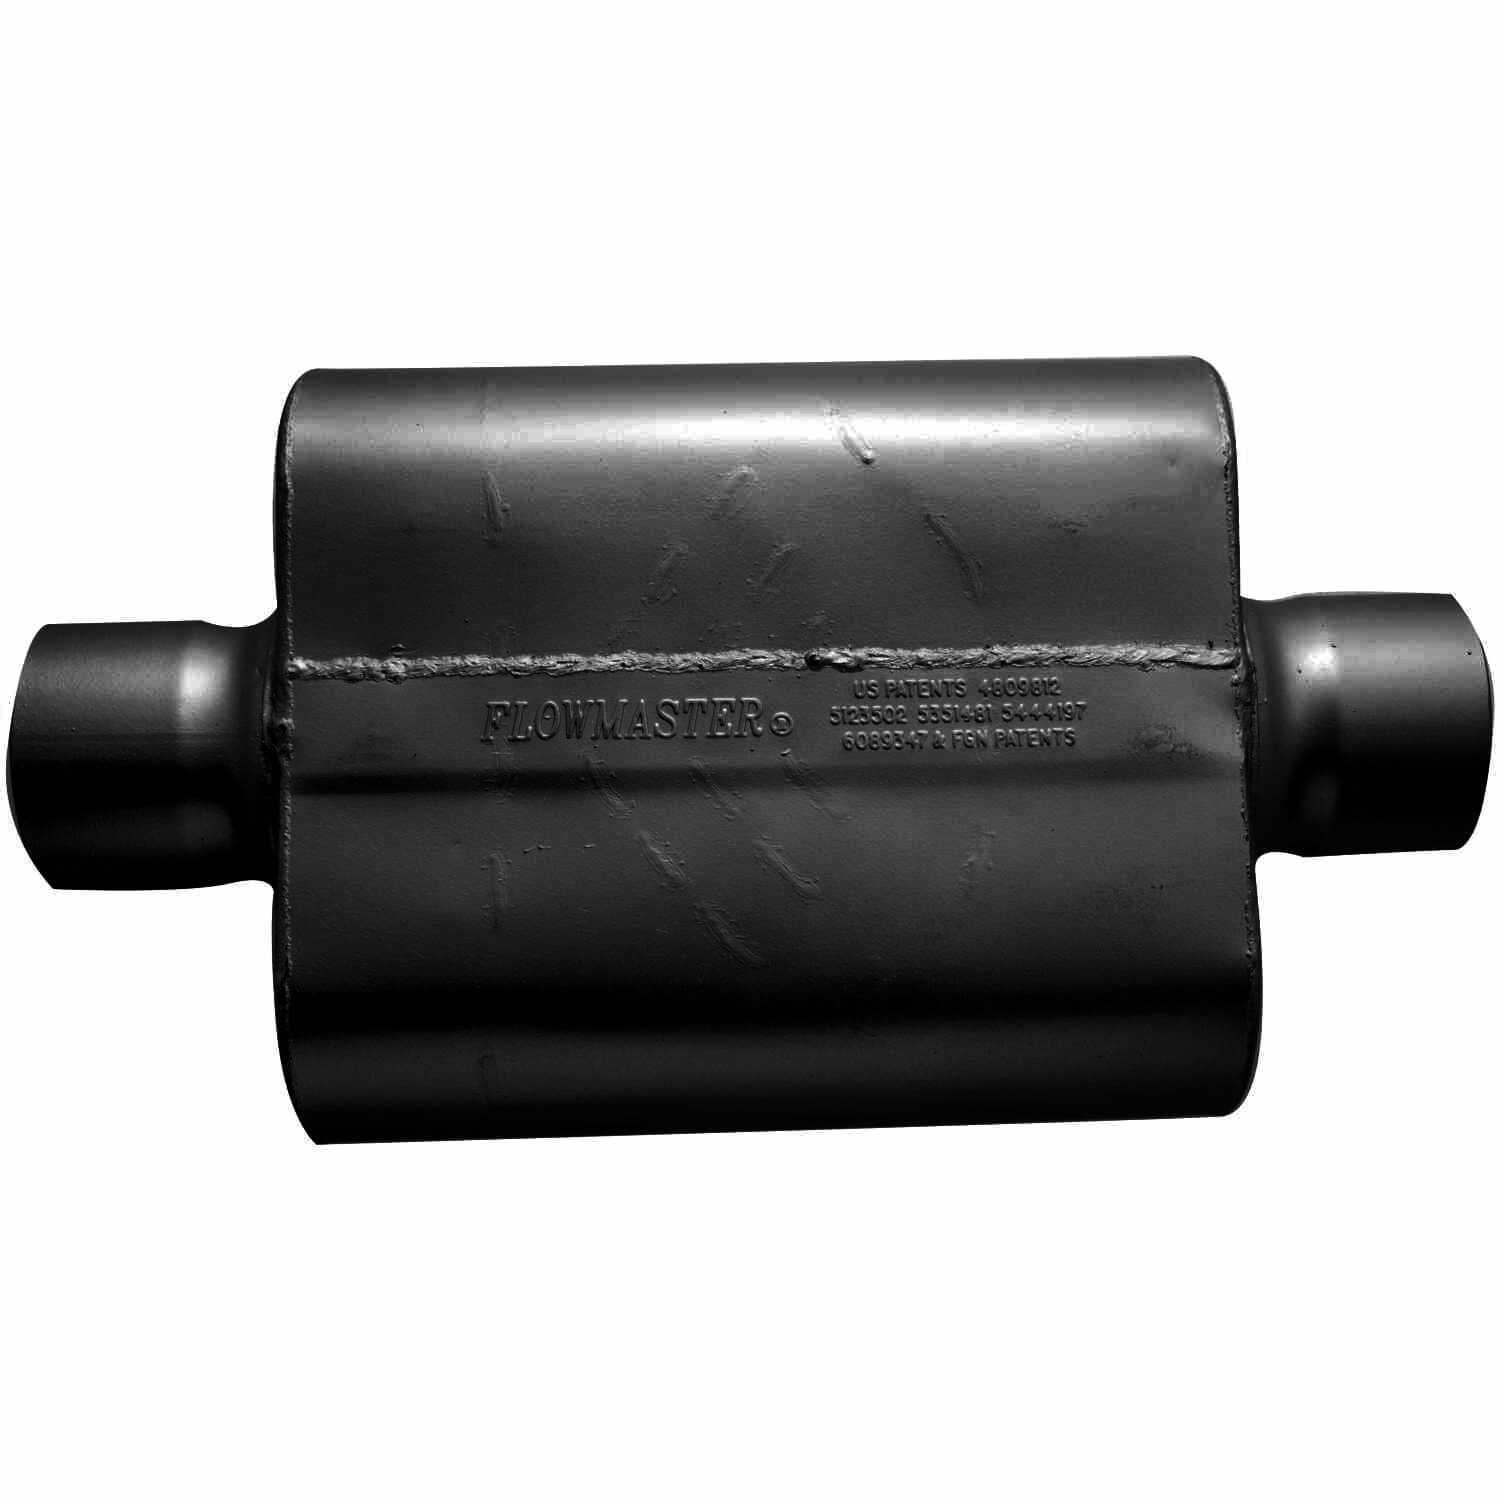 54030-12 Flowmaster 30 Series™ Delta Force Race Muffler